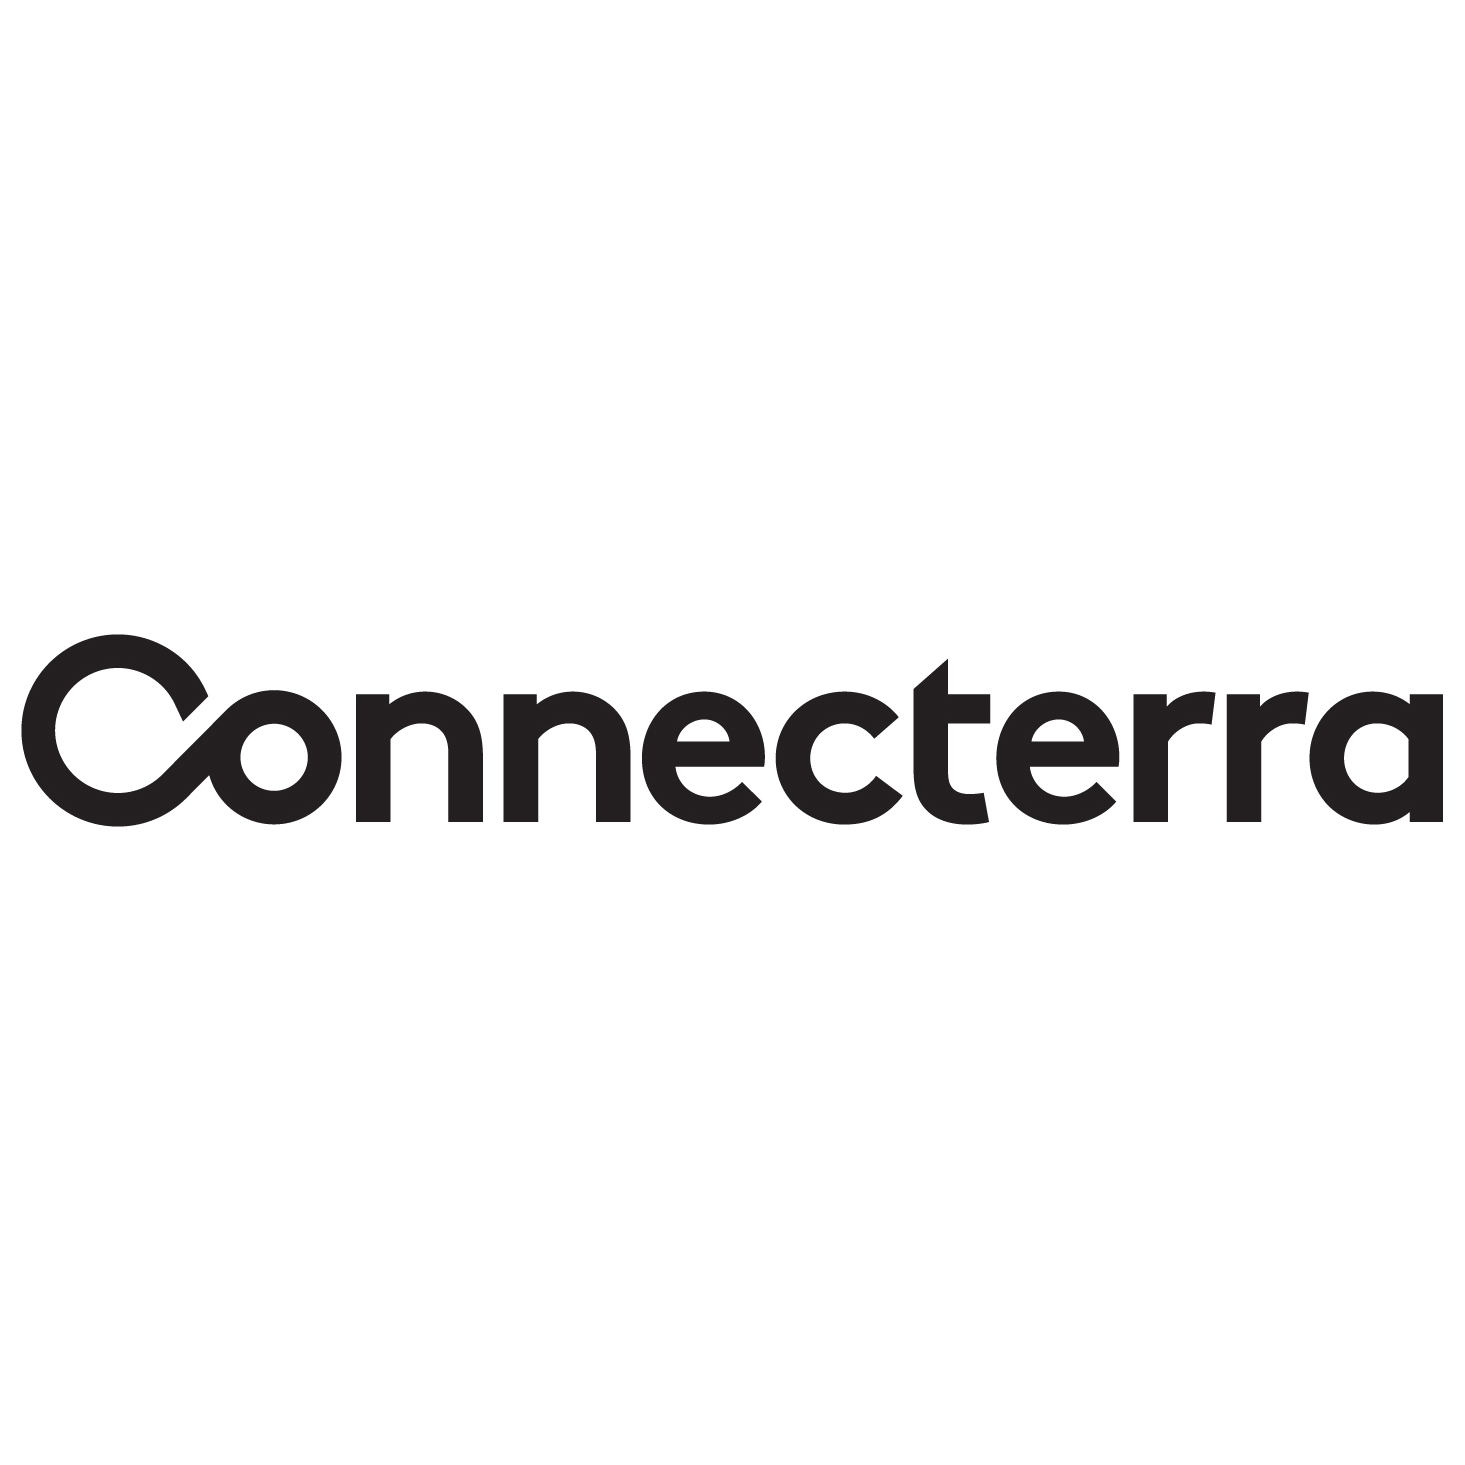 Connecterra Logo